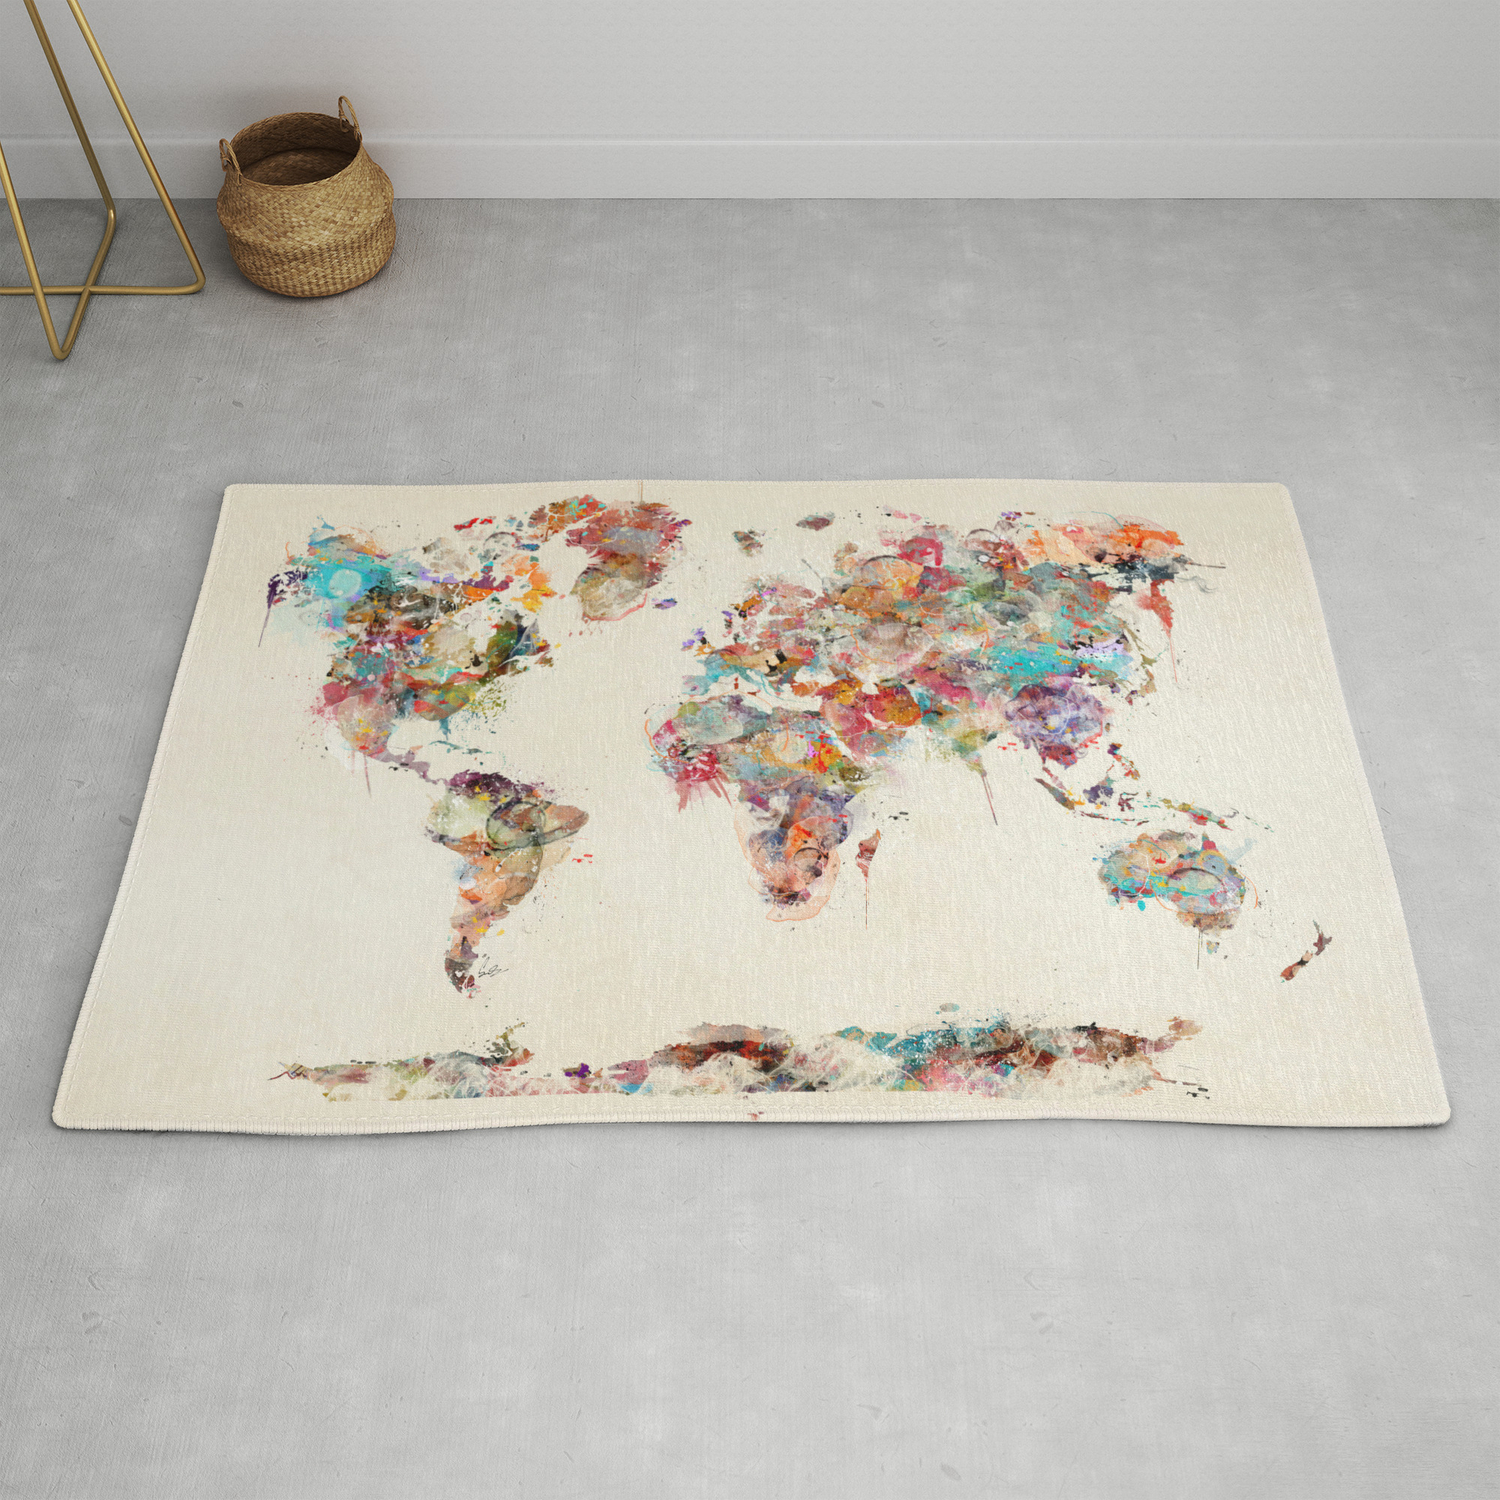 world map watercolor deux Rug by bribuckley on 3x3 world map, 3x5 world map, full page world map, square world map, legal world map, letter world map, 24x36 world map, 10x8 world map, custom world map, 11x14 world map, a4 world map, 10x12 world map, 15x18 world map, 11x17 world map, 8x11 world map, 16x20 world map, 4x8 world map, 12x18 world map, 8x10 world map, size world map,